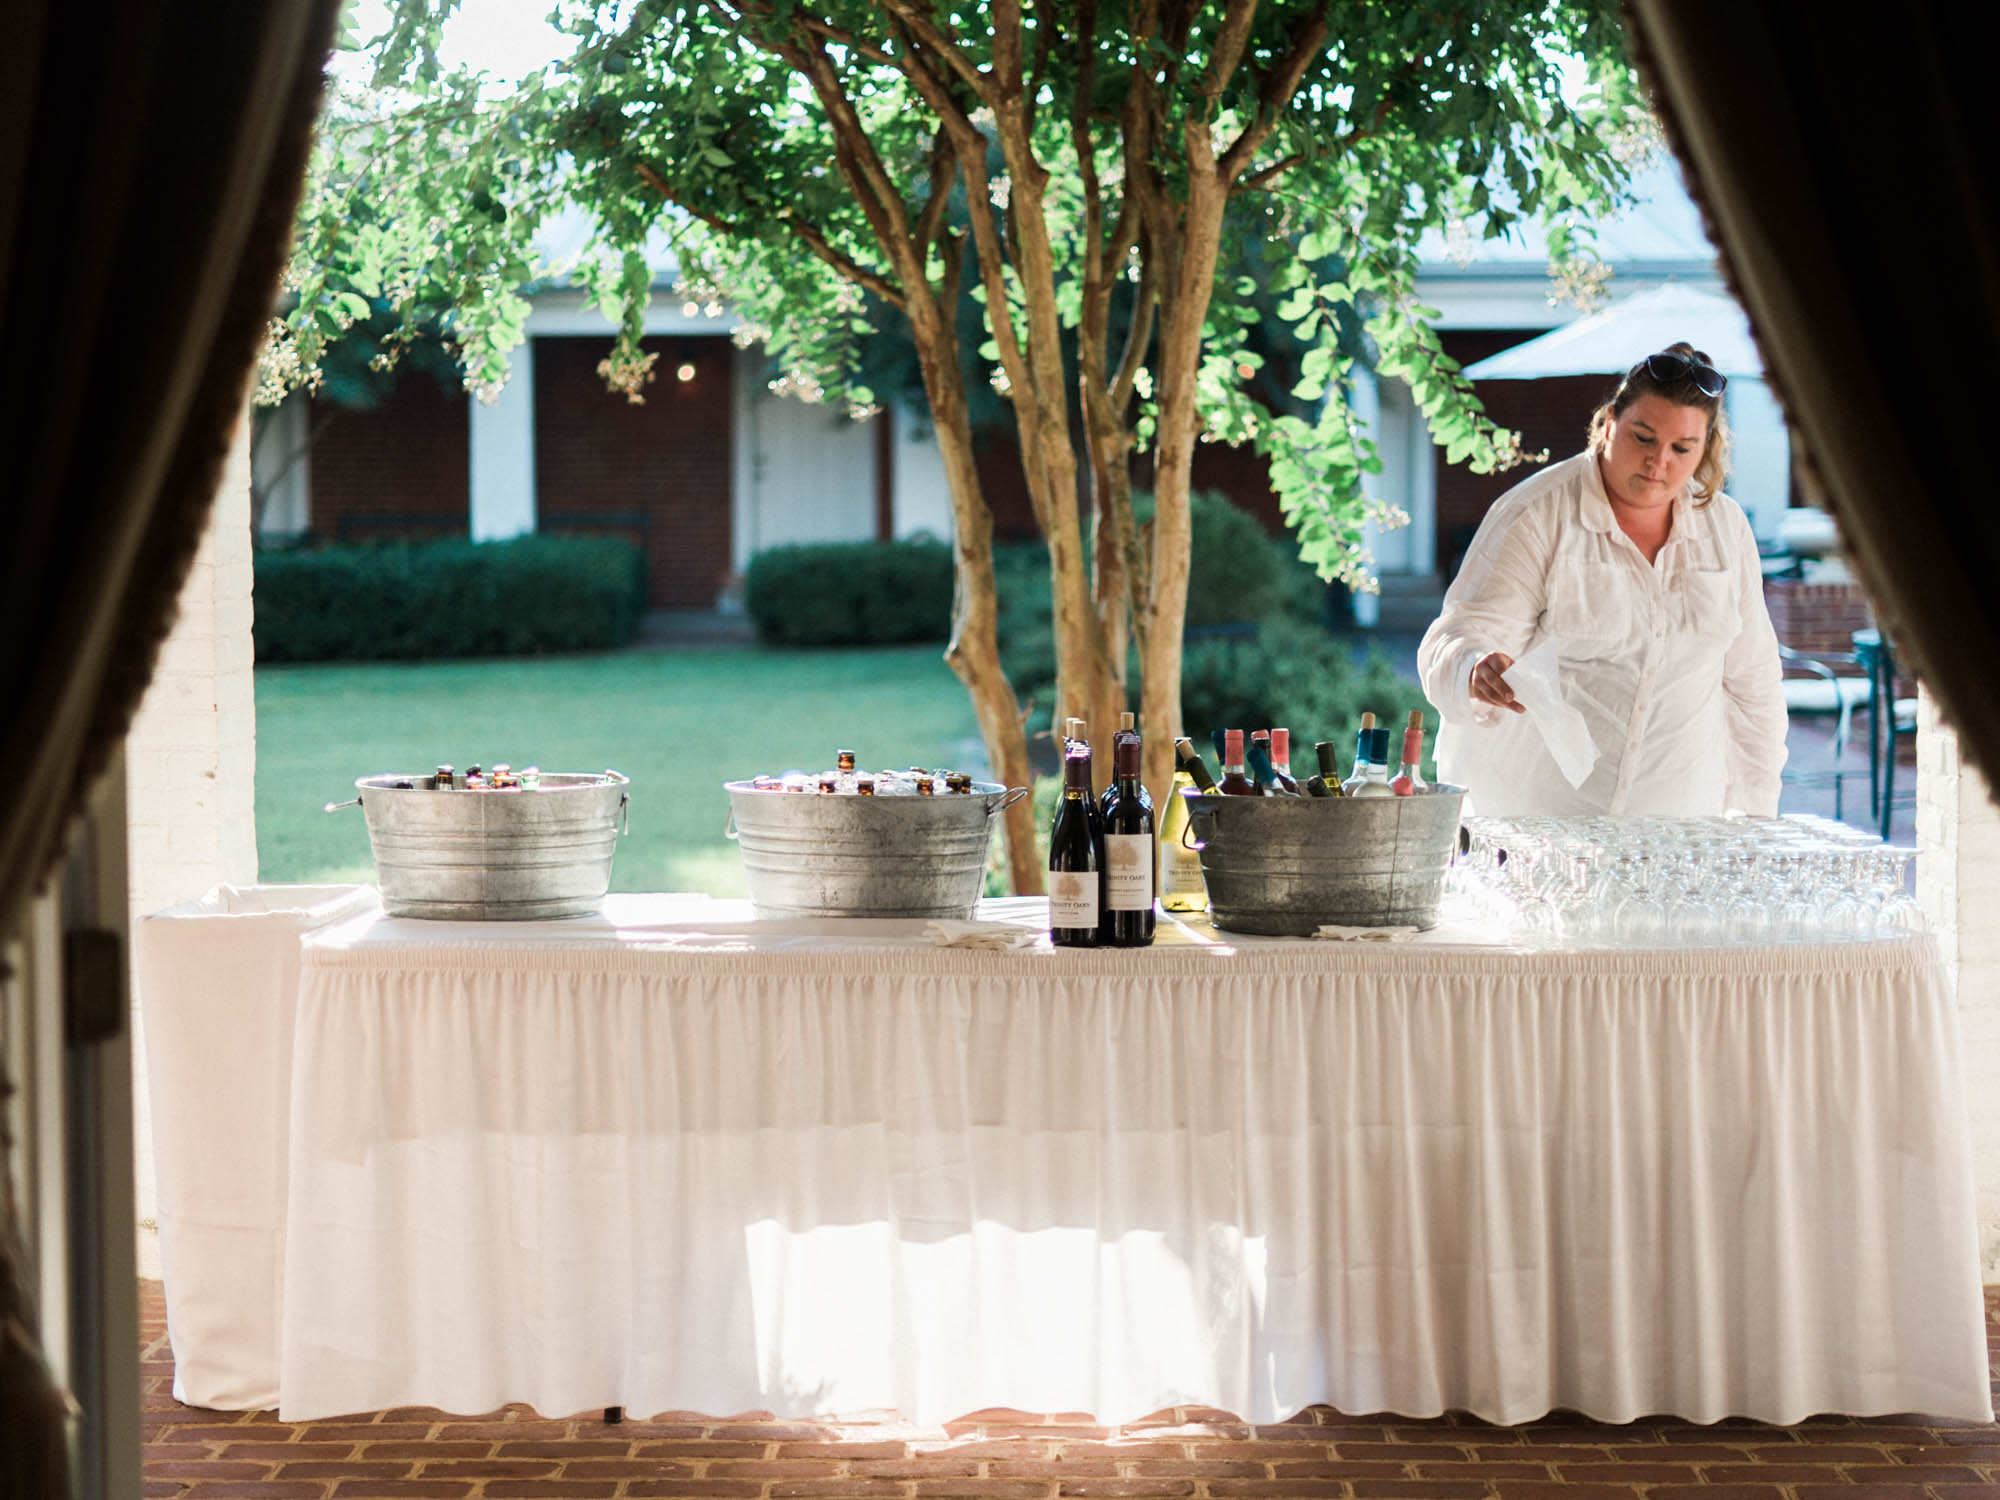 berry-hill-resort-south-boston-virginia-charlotte-wedding-photographer-6-2.jpg